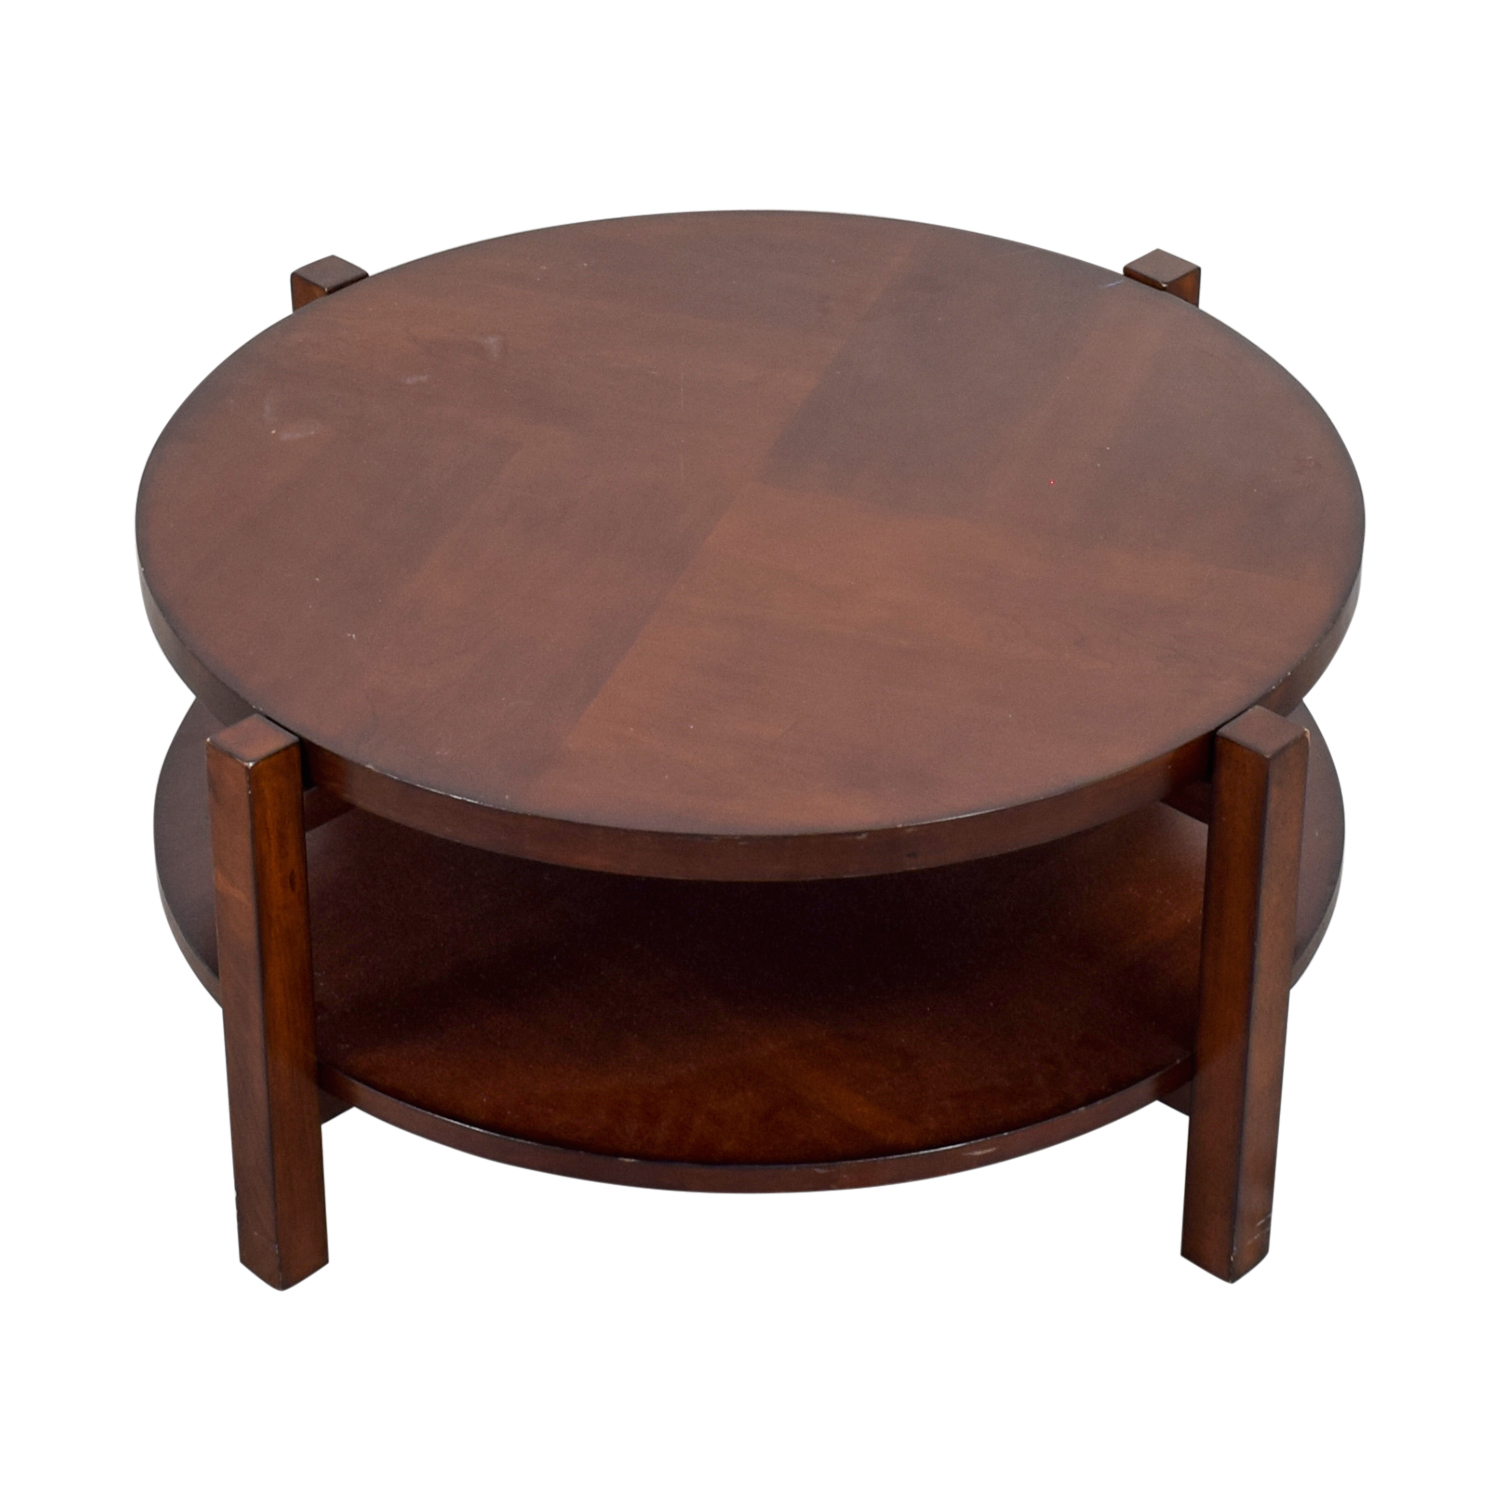 shop Bassett Bassett Rotating Round Wood Coffee Table online